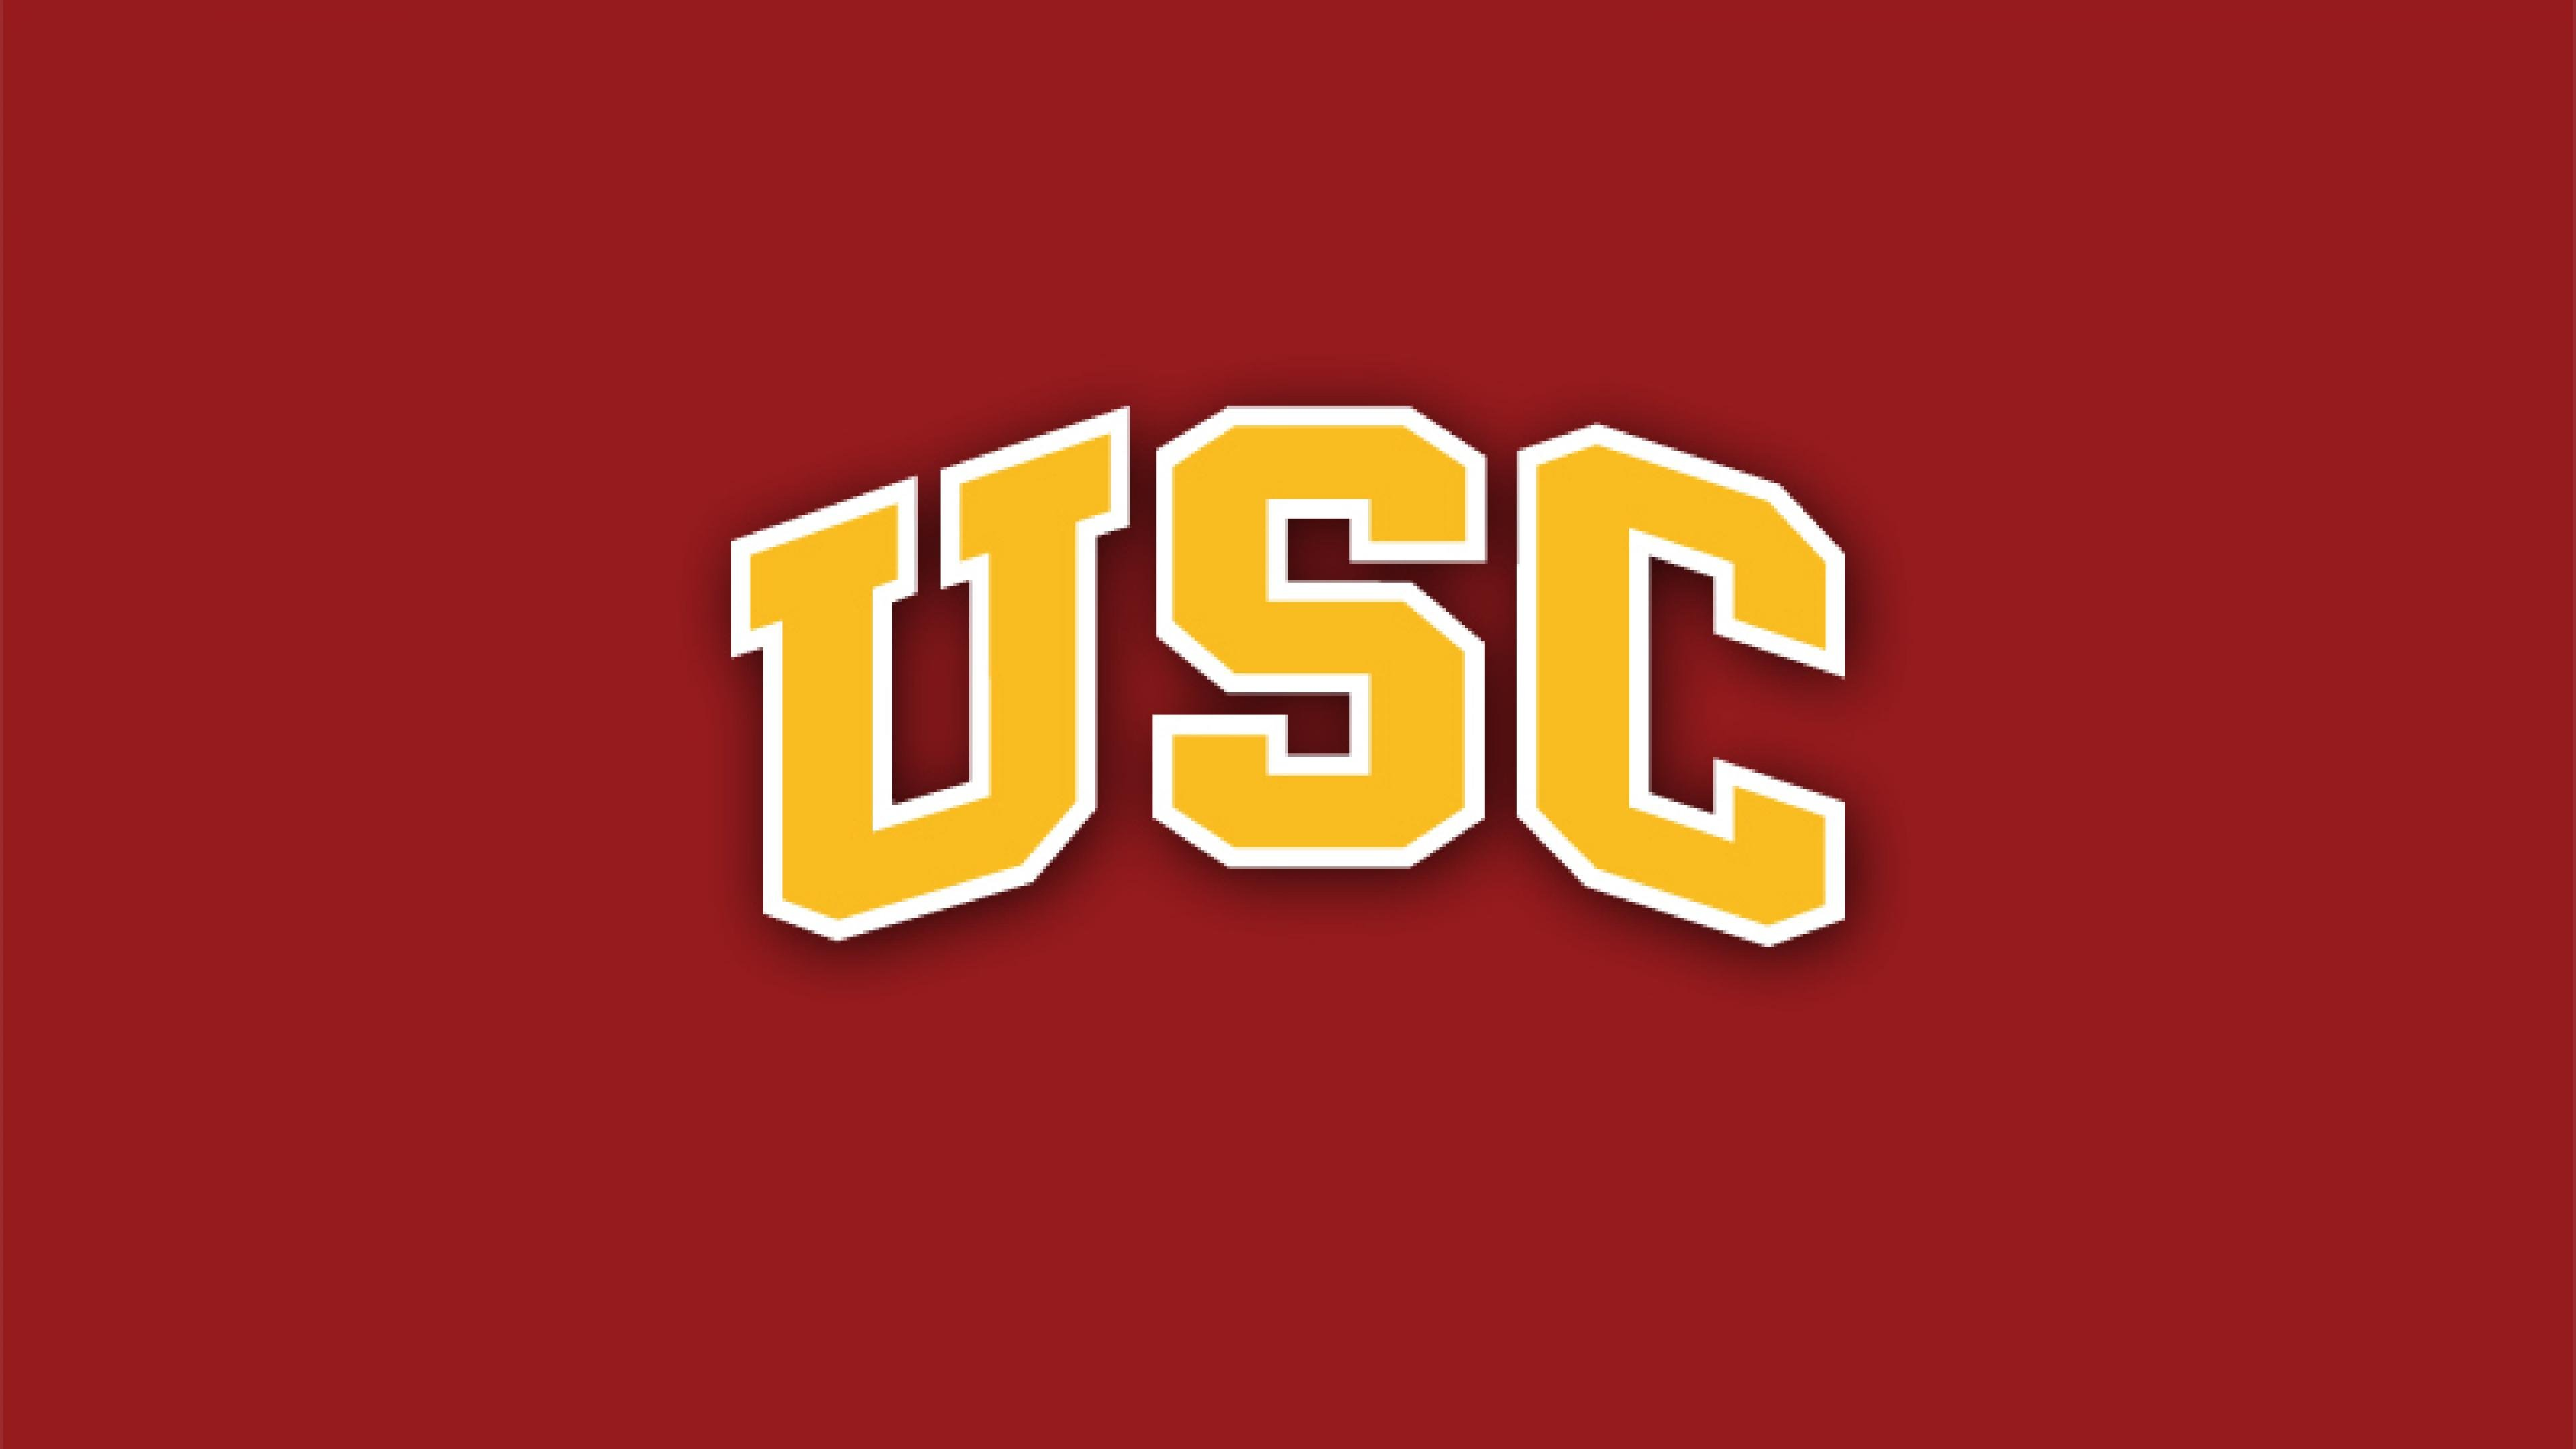 USC TROJANS college football wallpaper background 3840x2160